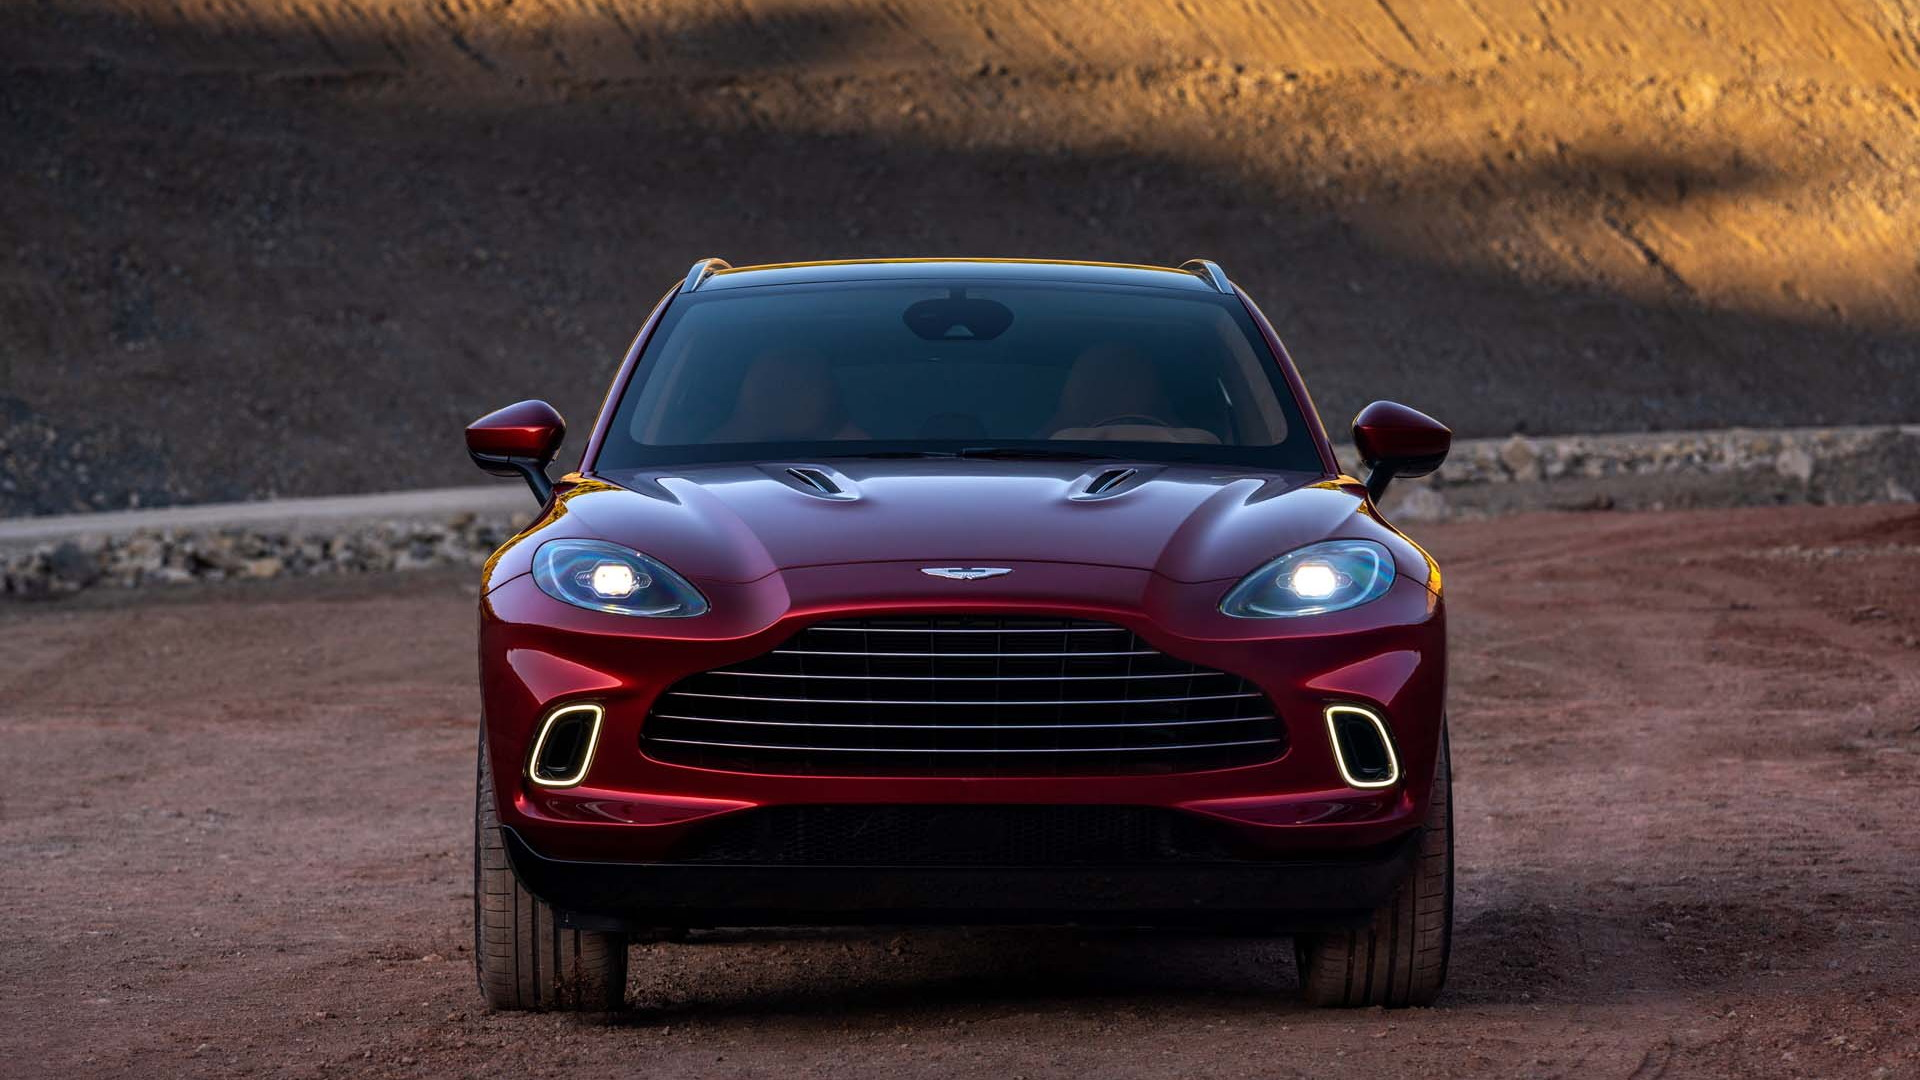 Aston Martin unveils first SUV